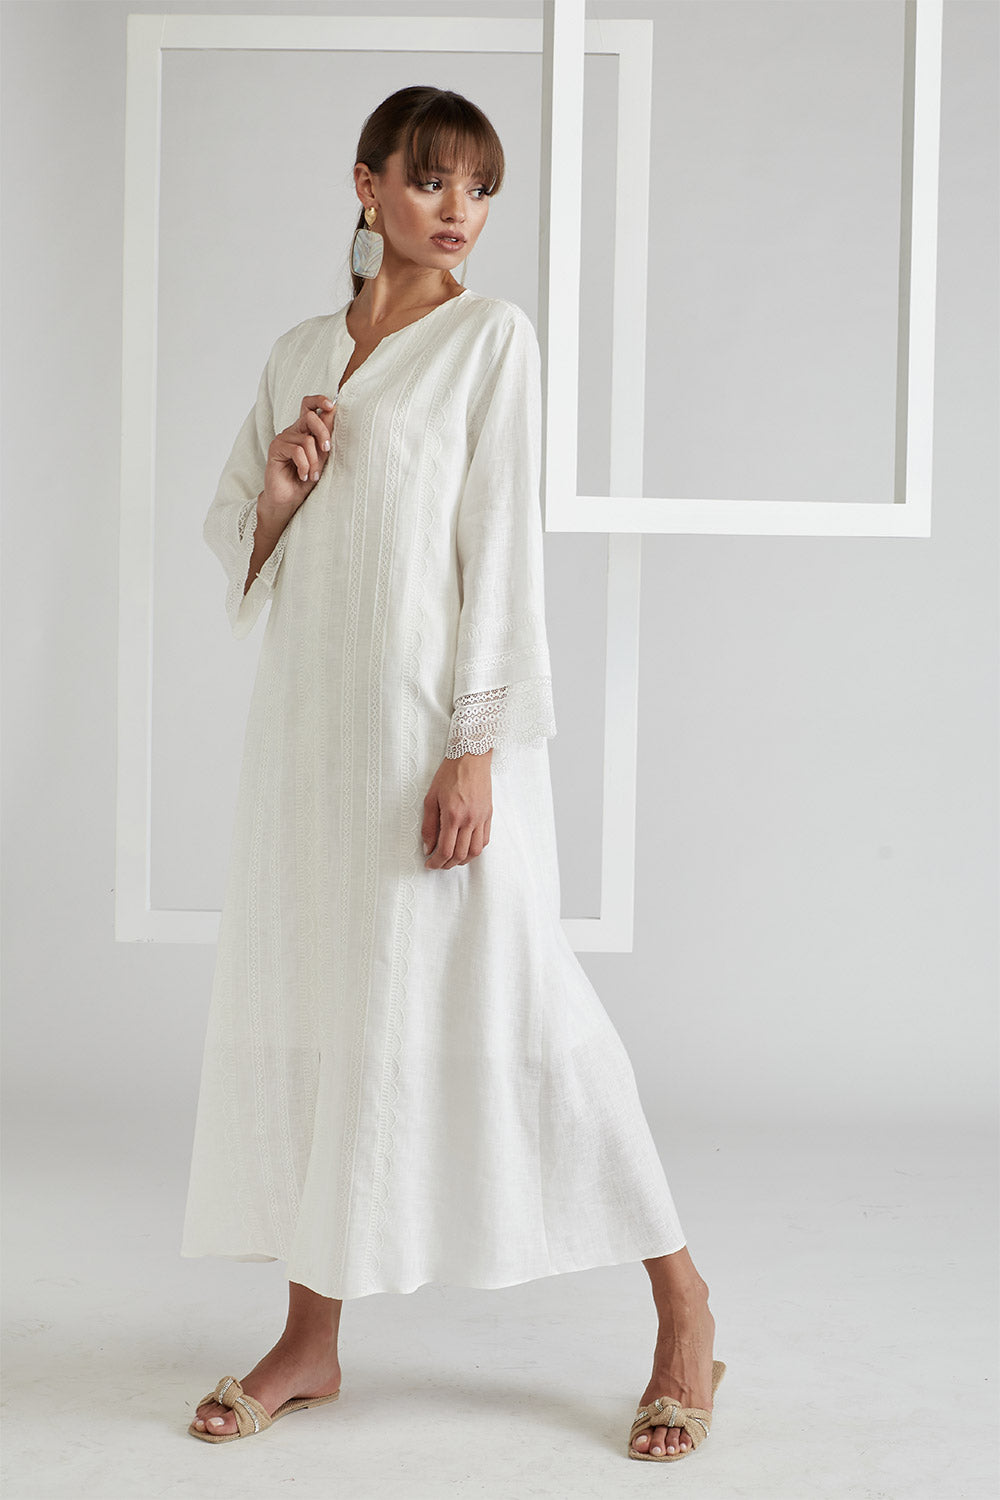 Trimmed Linen Dress - Off White